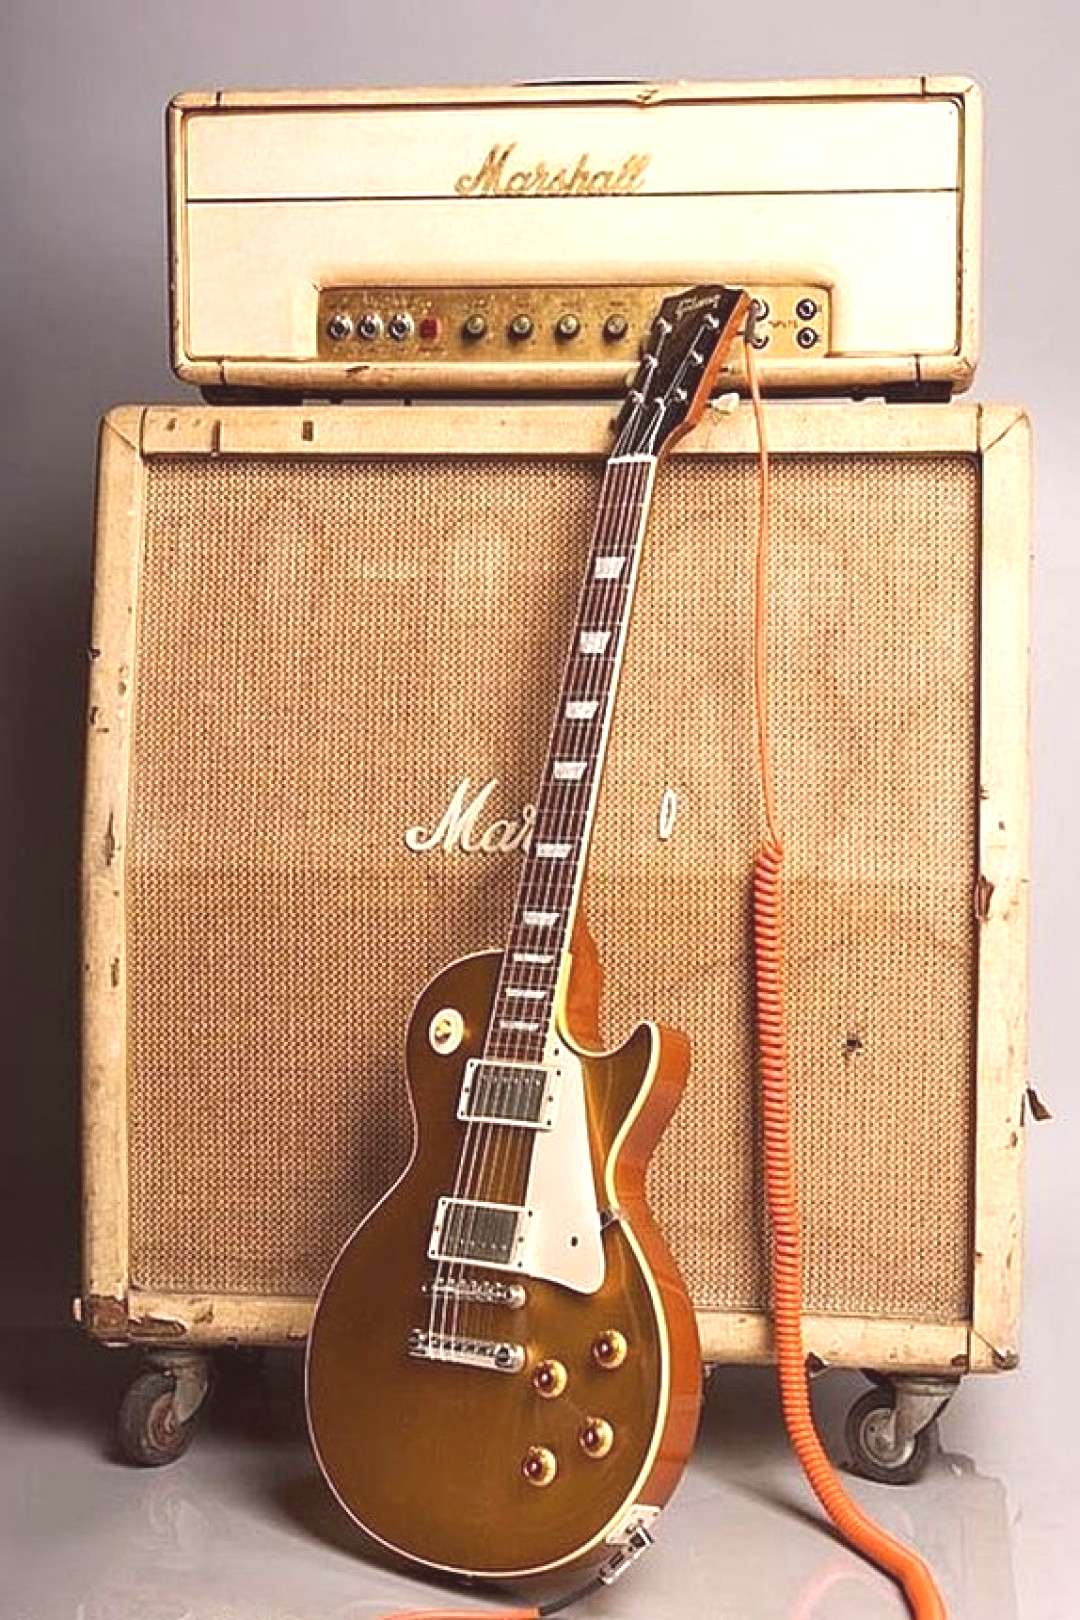 A Gibson guitar and a Marshall amp......its like peanut butter and jelly.